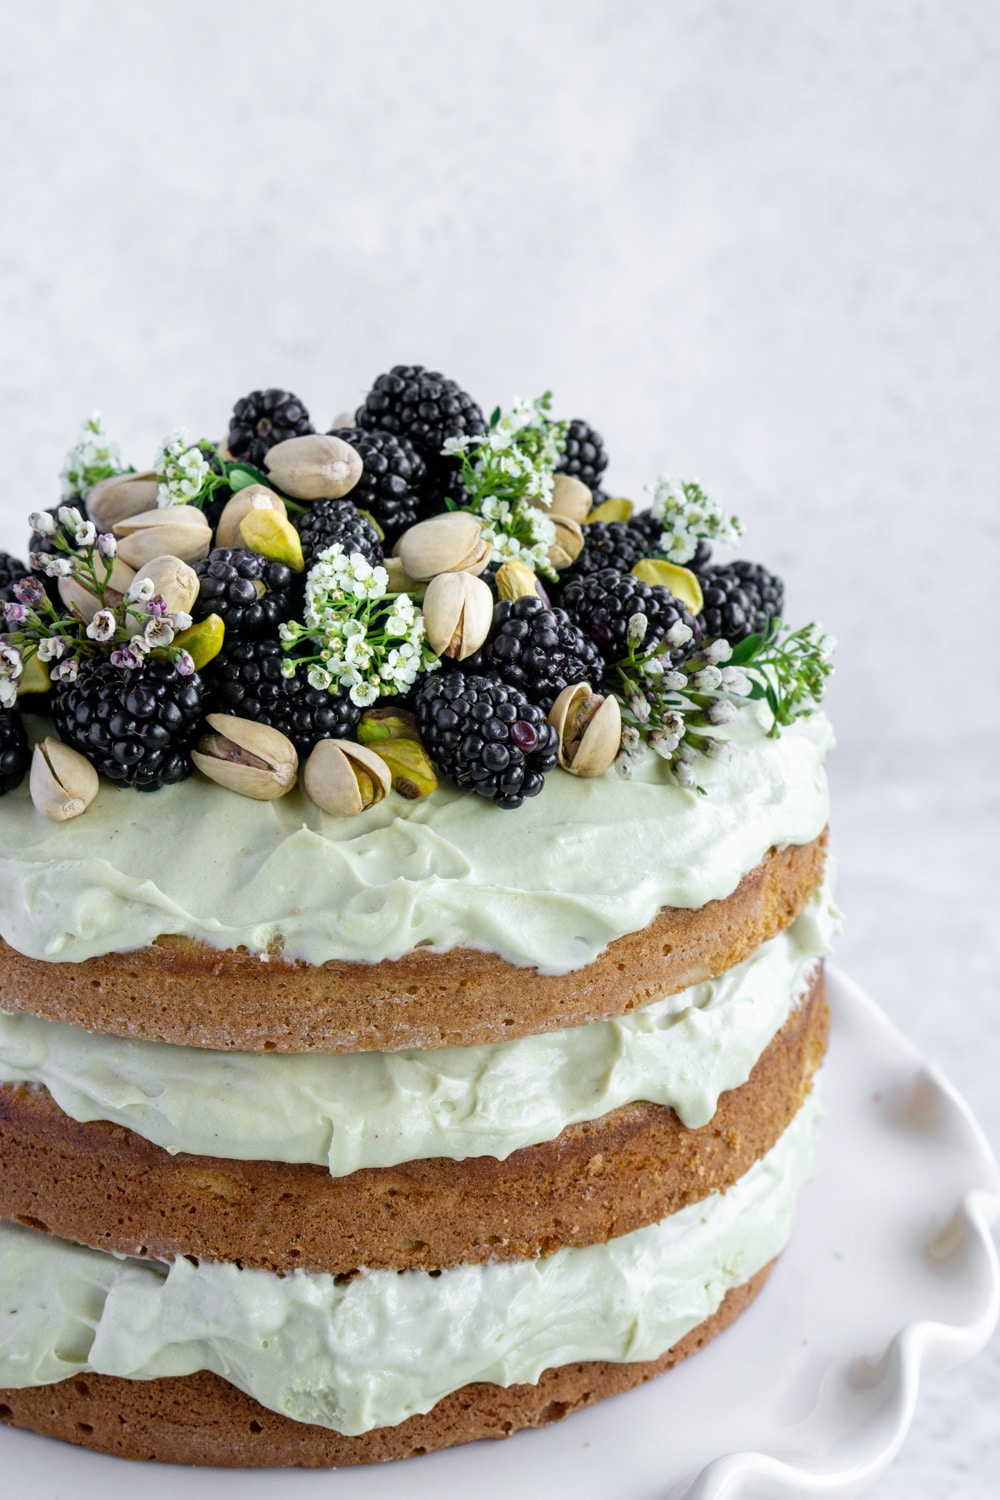 side view of layered pistachio cake topped with flowers, blackberries and pistachios